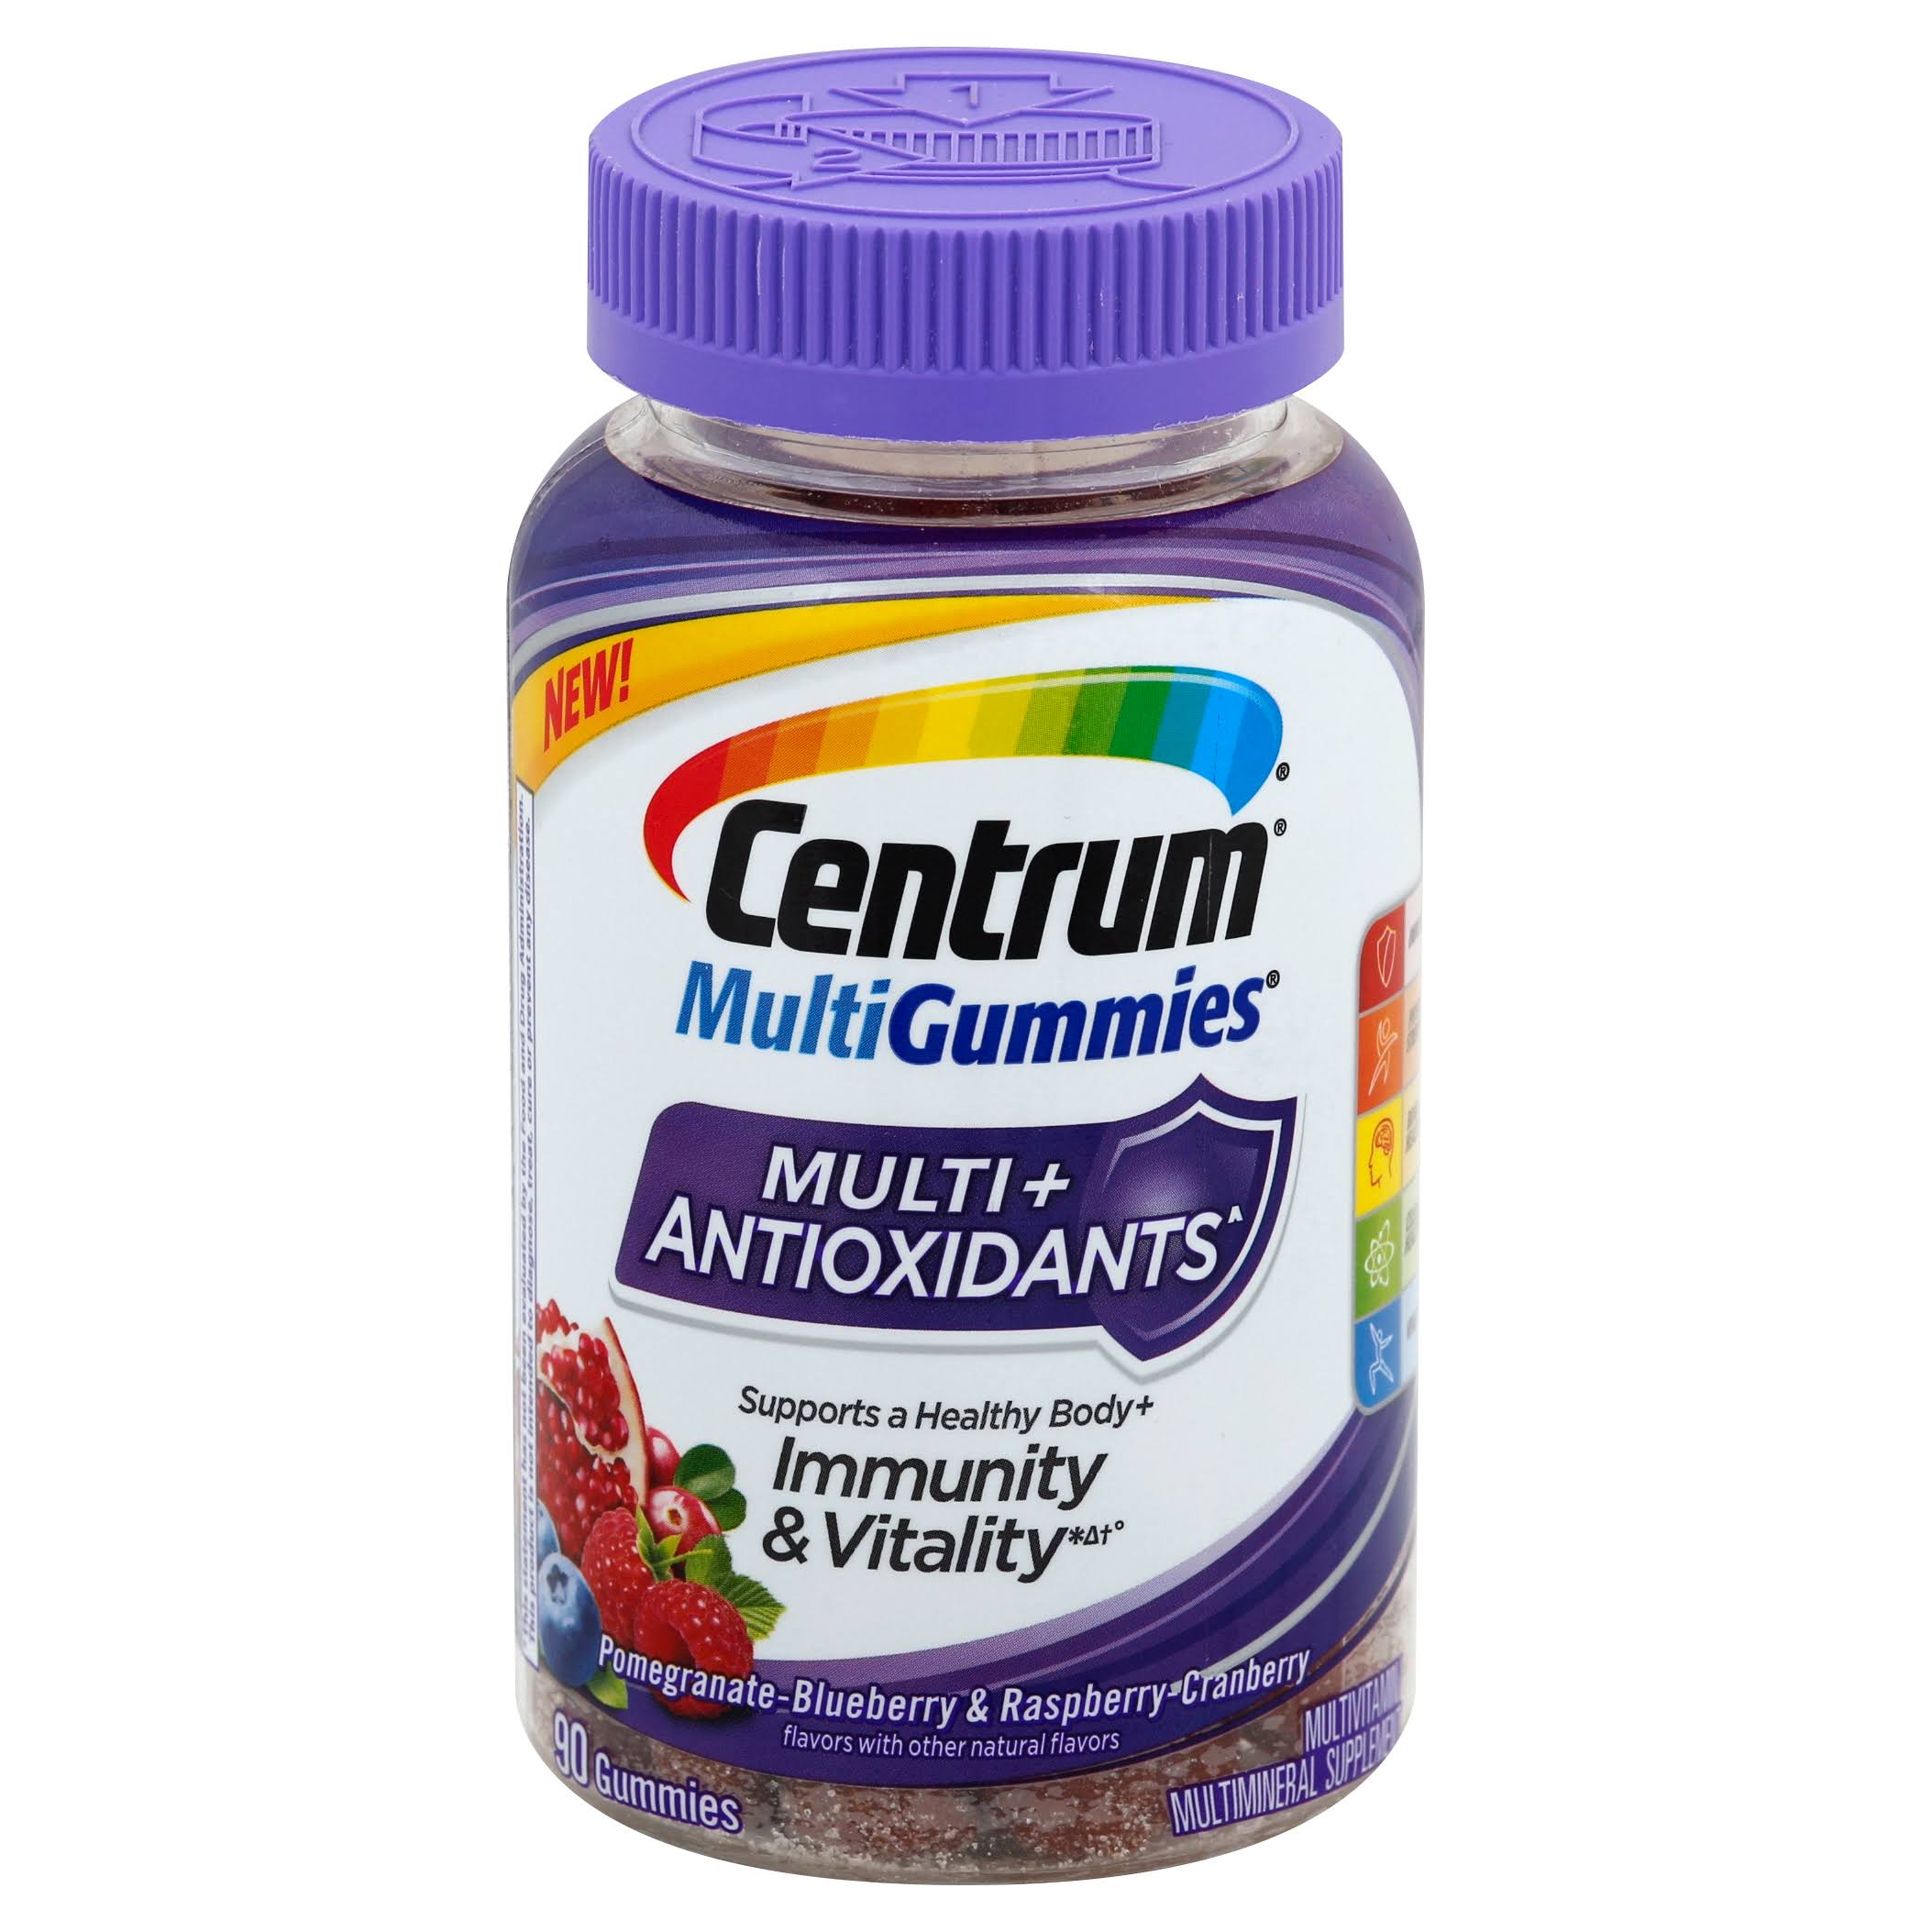 Centrum Multigummies Adult Multivitamin Antioxidants Gummies Supplements - 90ct